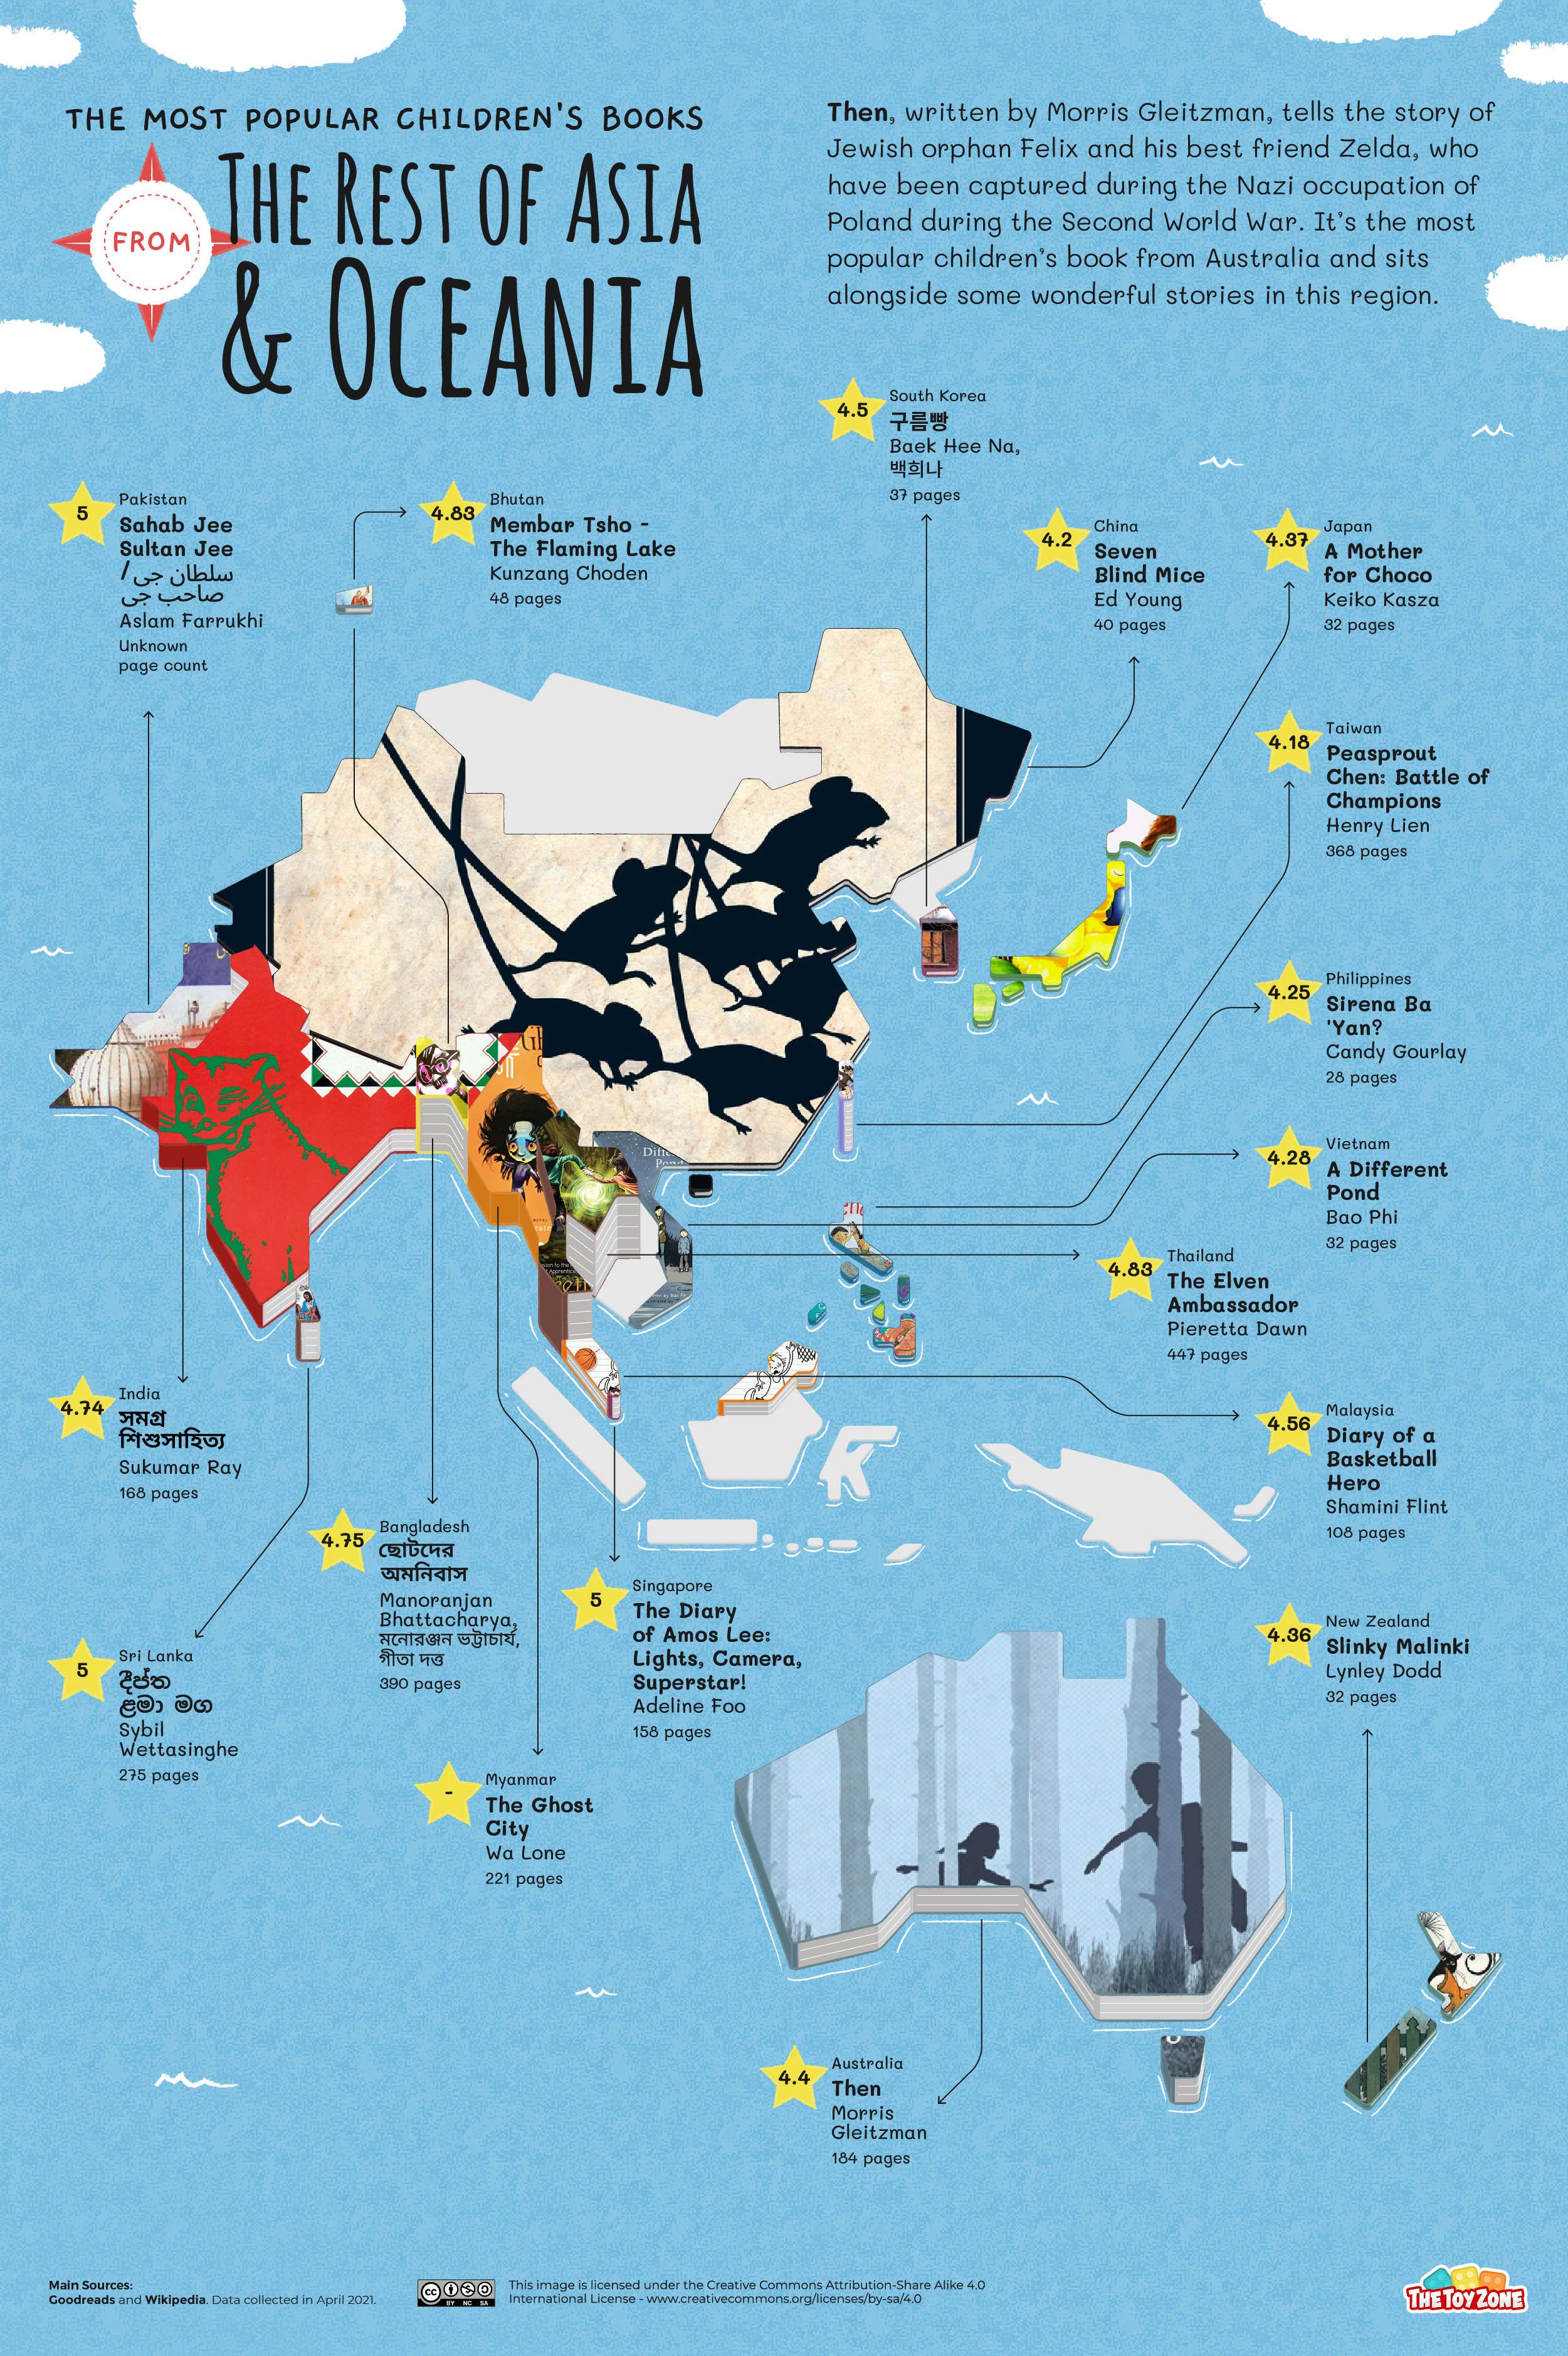 Most popular children's books in Asian and Oceania map